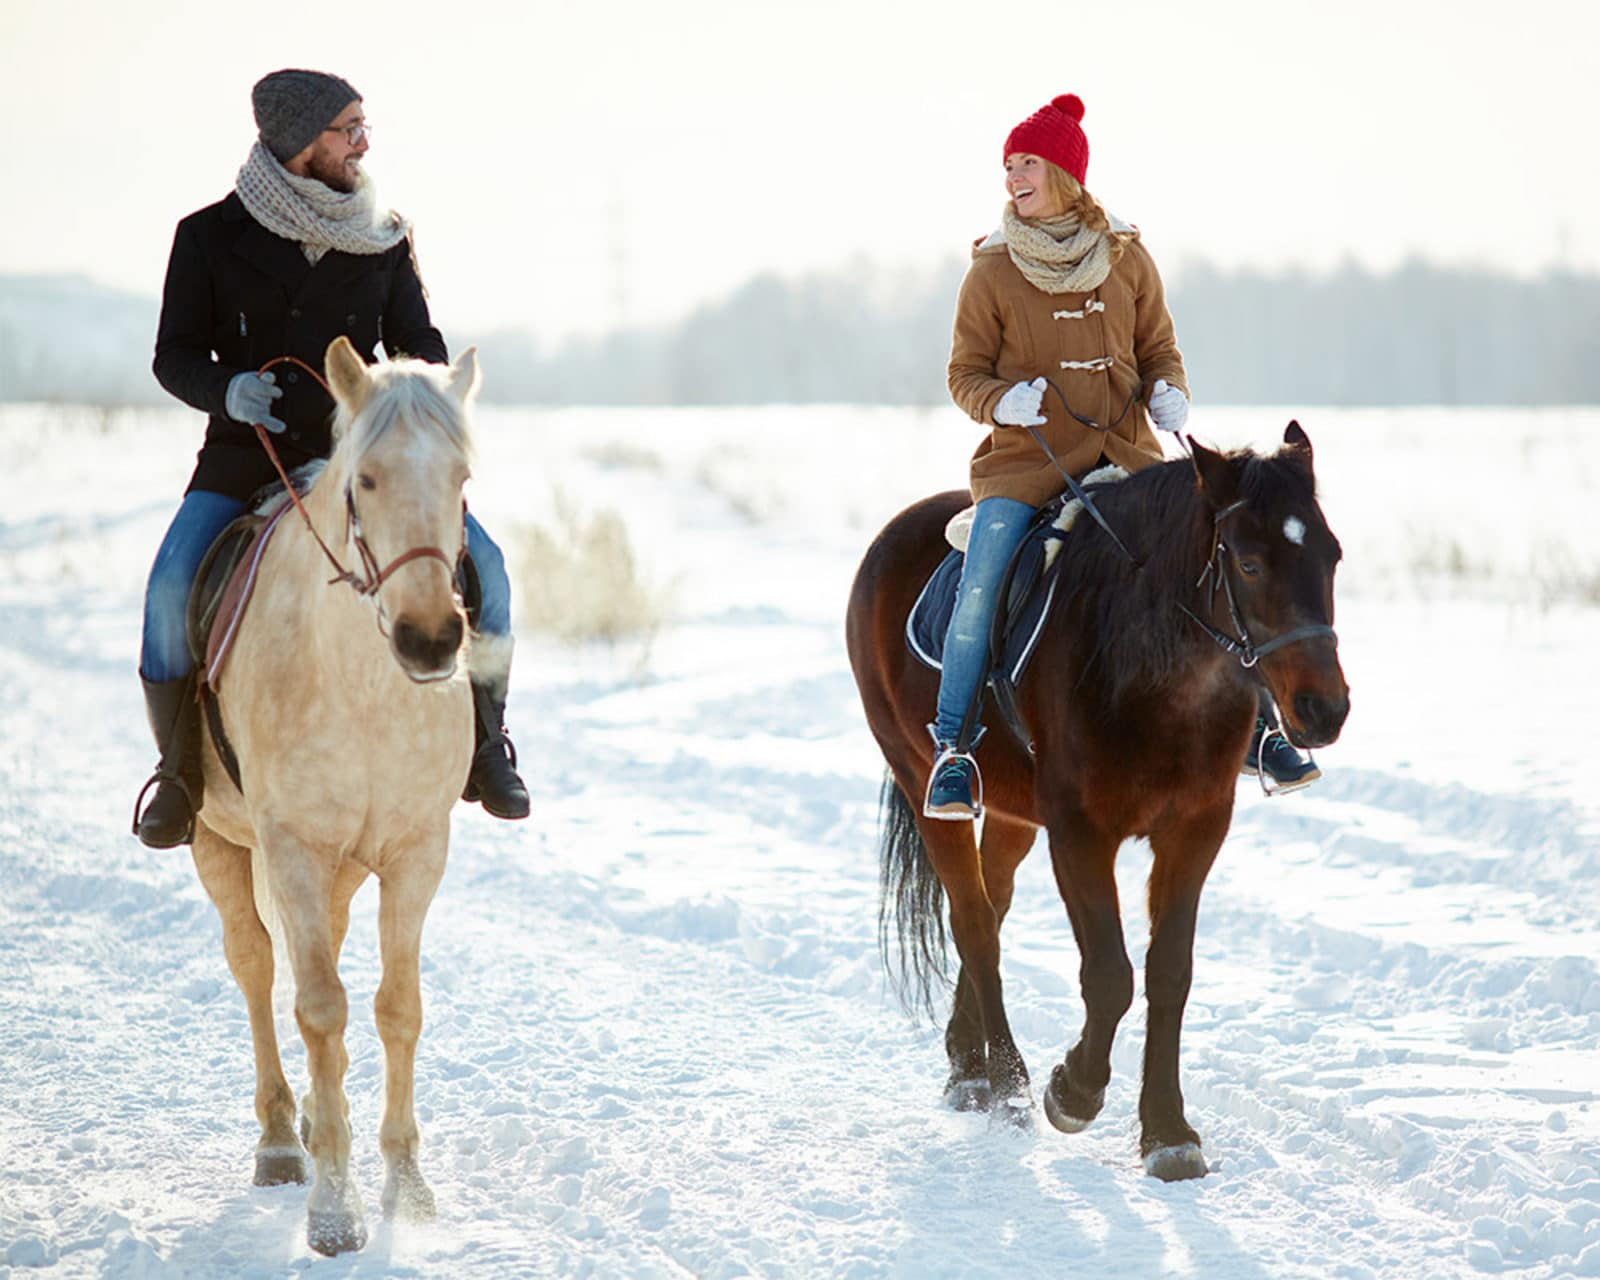 Winter Horse Riding In Bled Activities In Slovenia From Bled Ljubljana